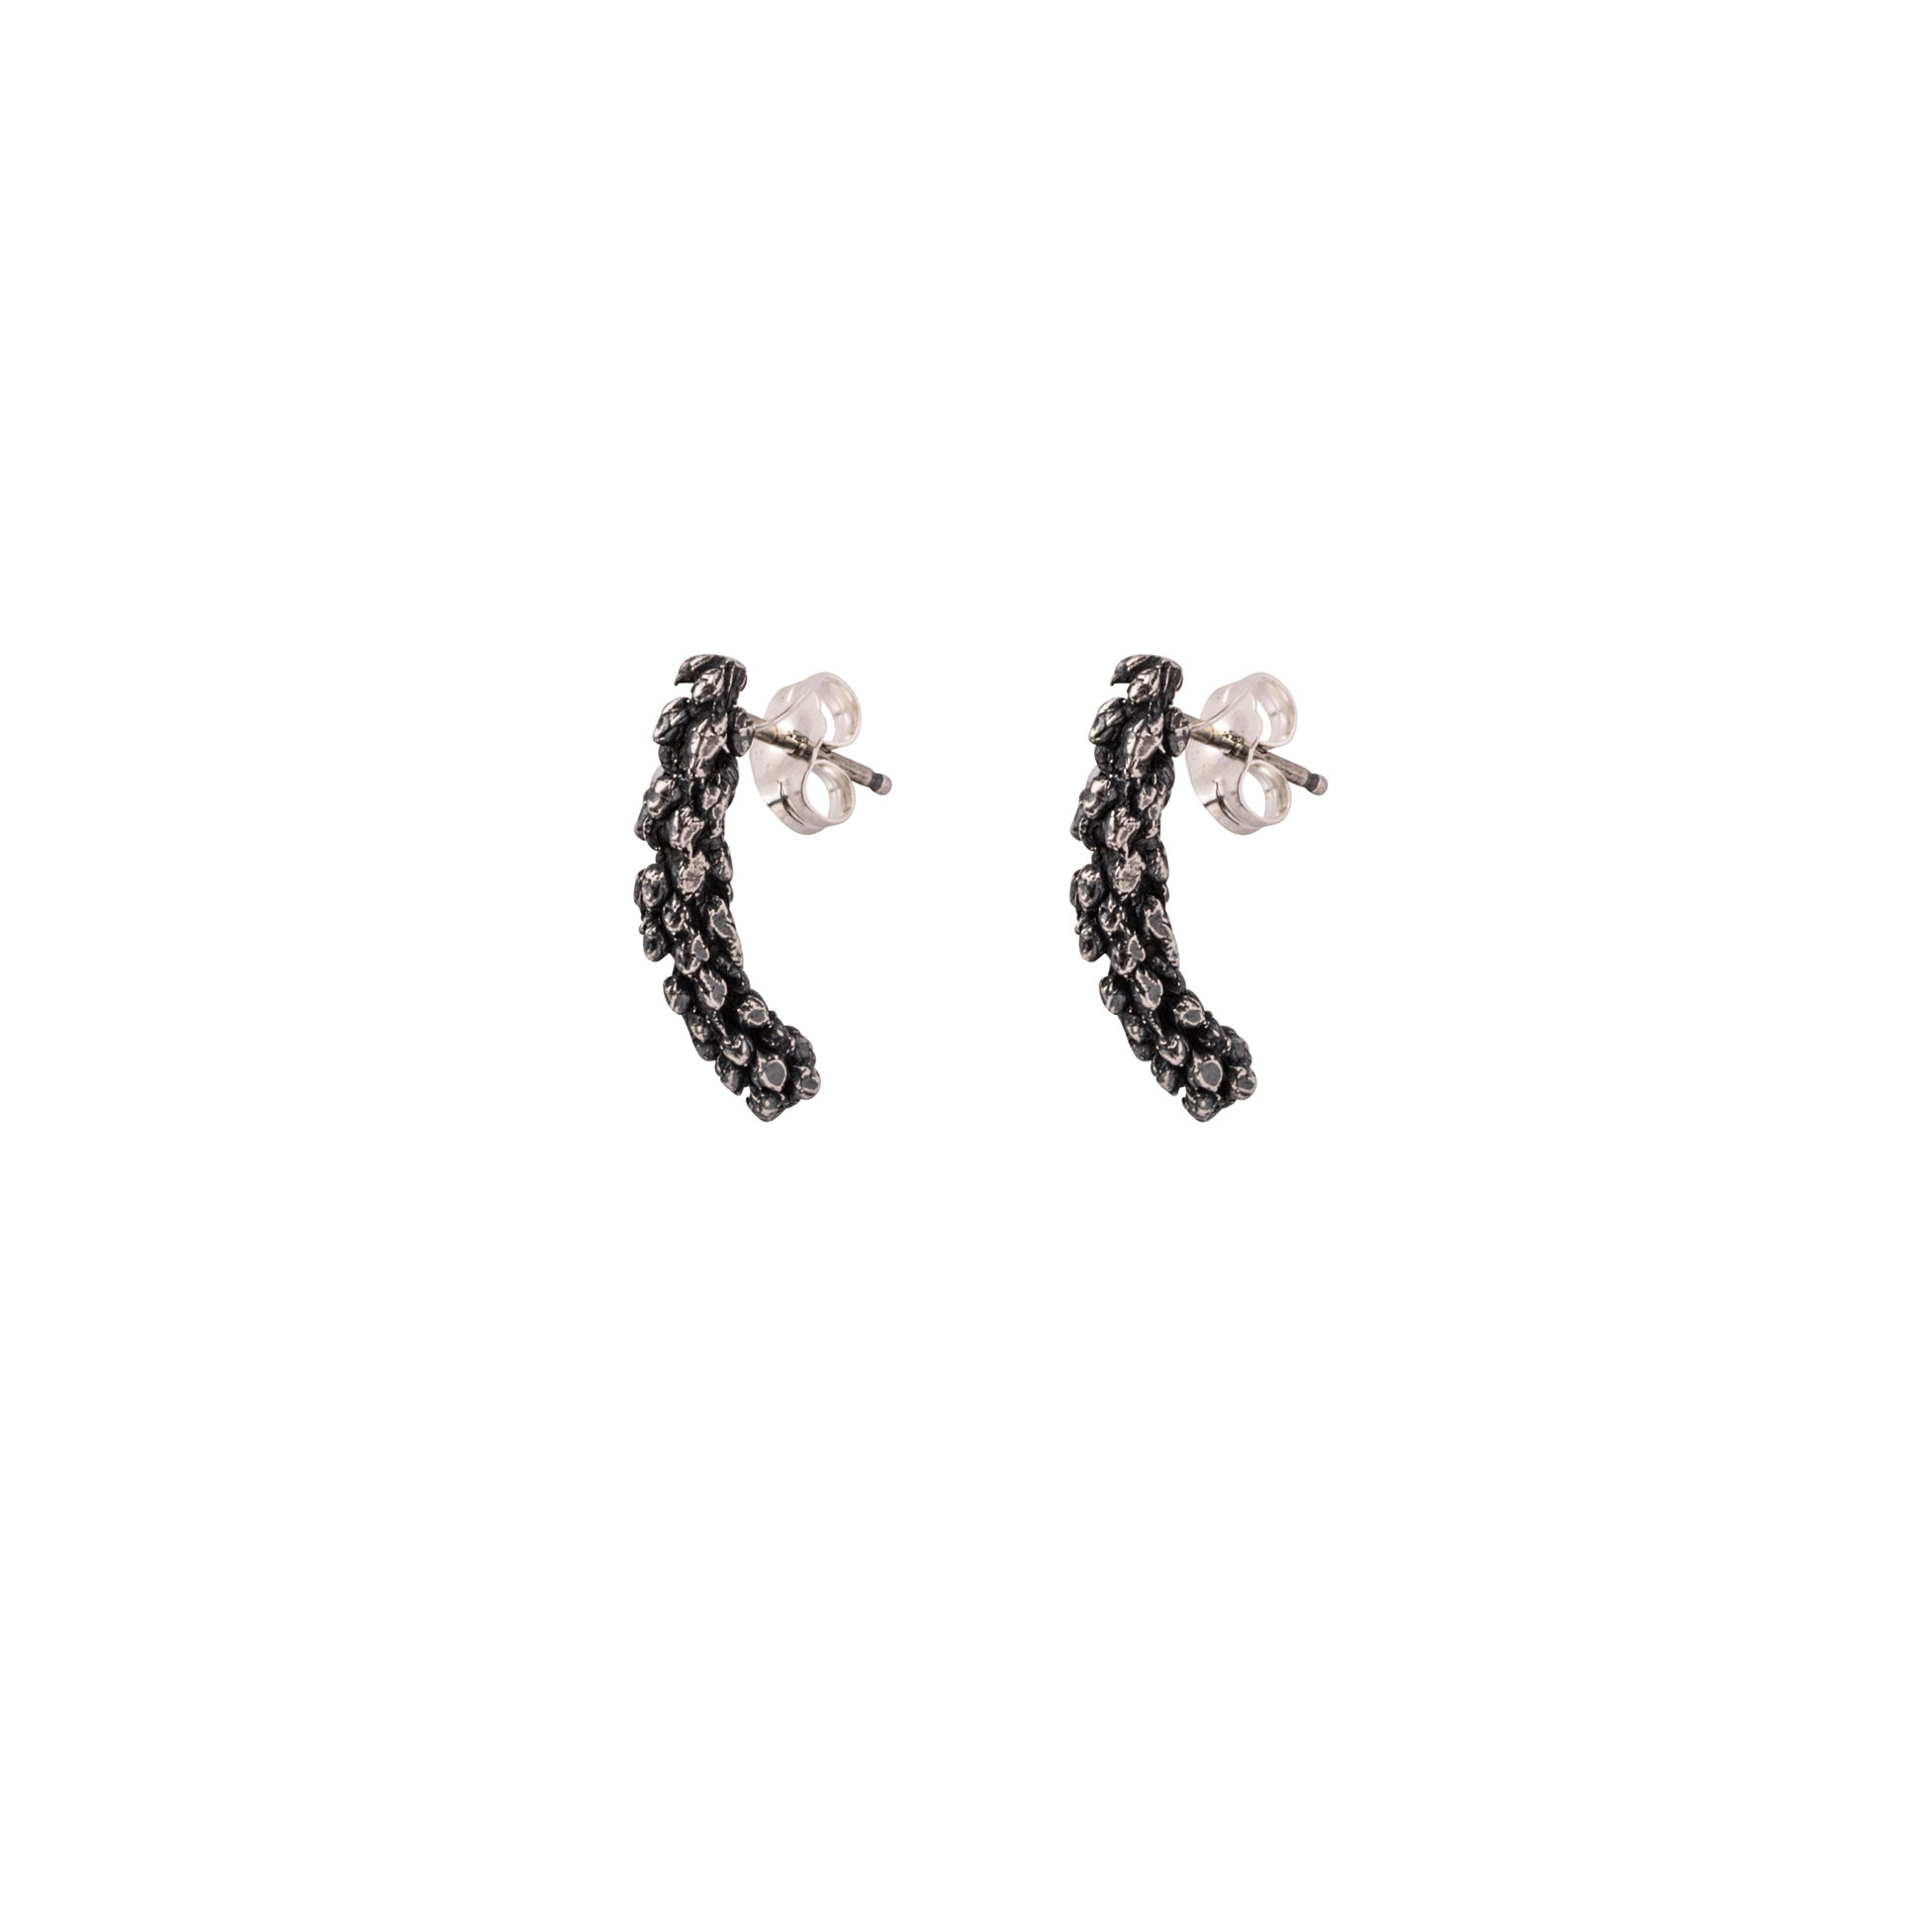 earrings_6268.JPG